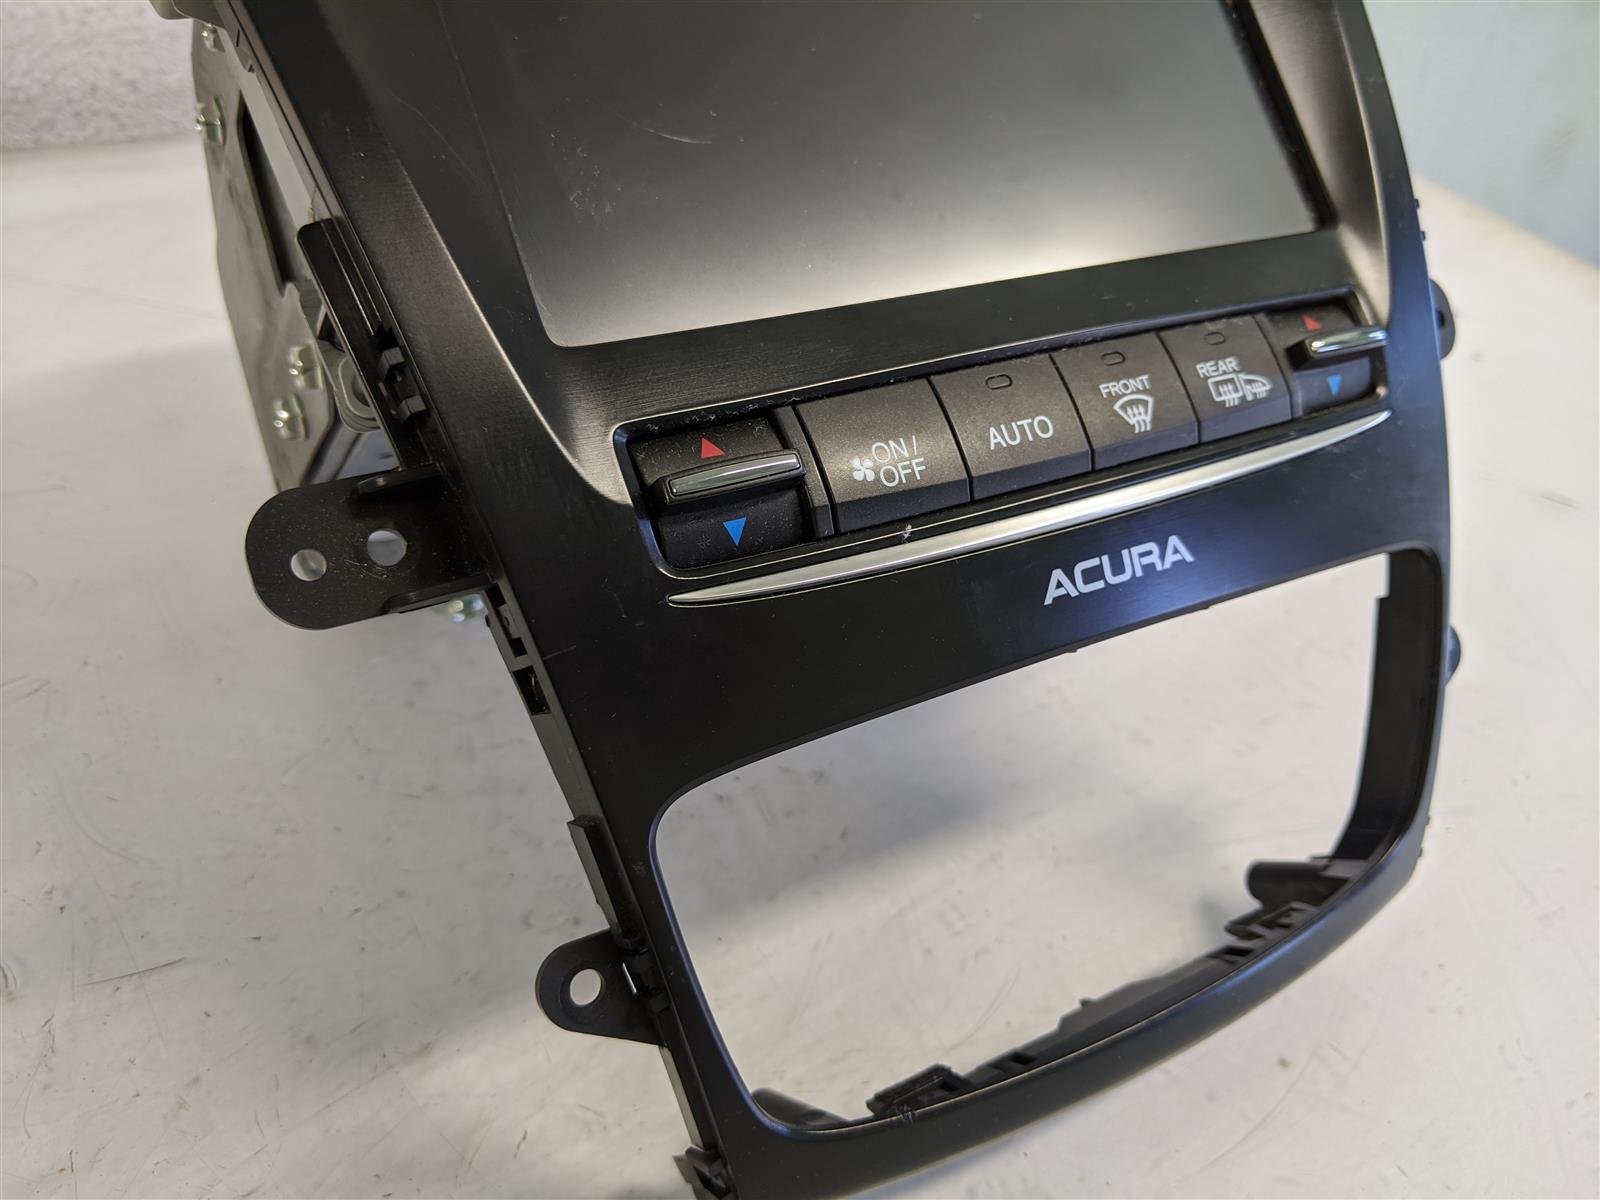 2017 Acura TLX Radio Display Screen Receiver Assy Replacement